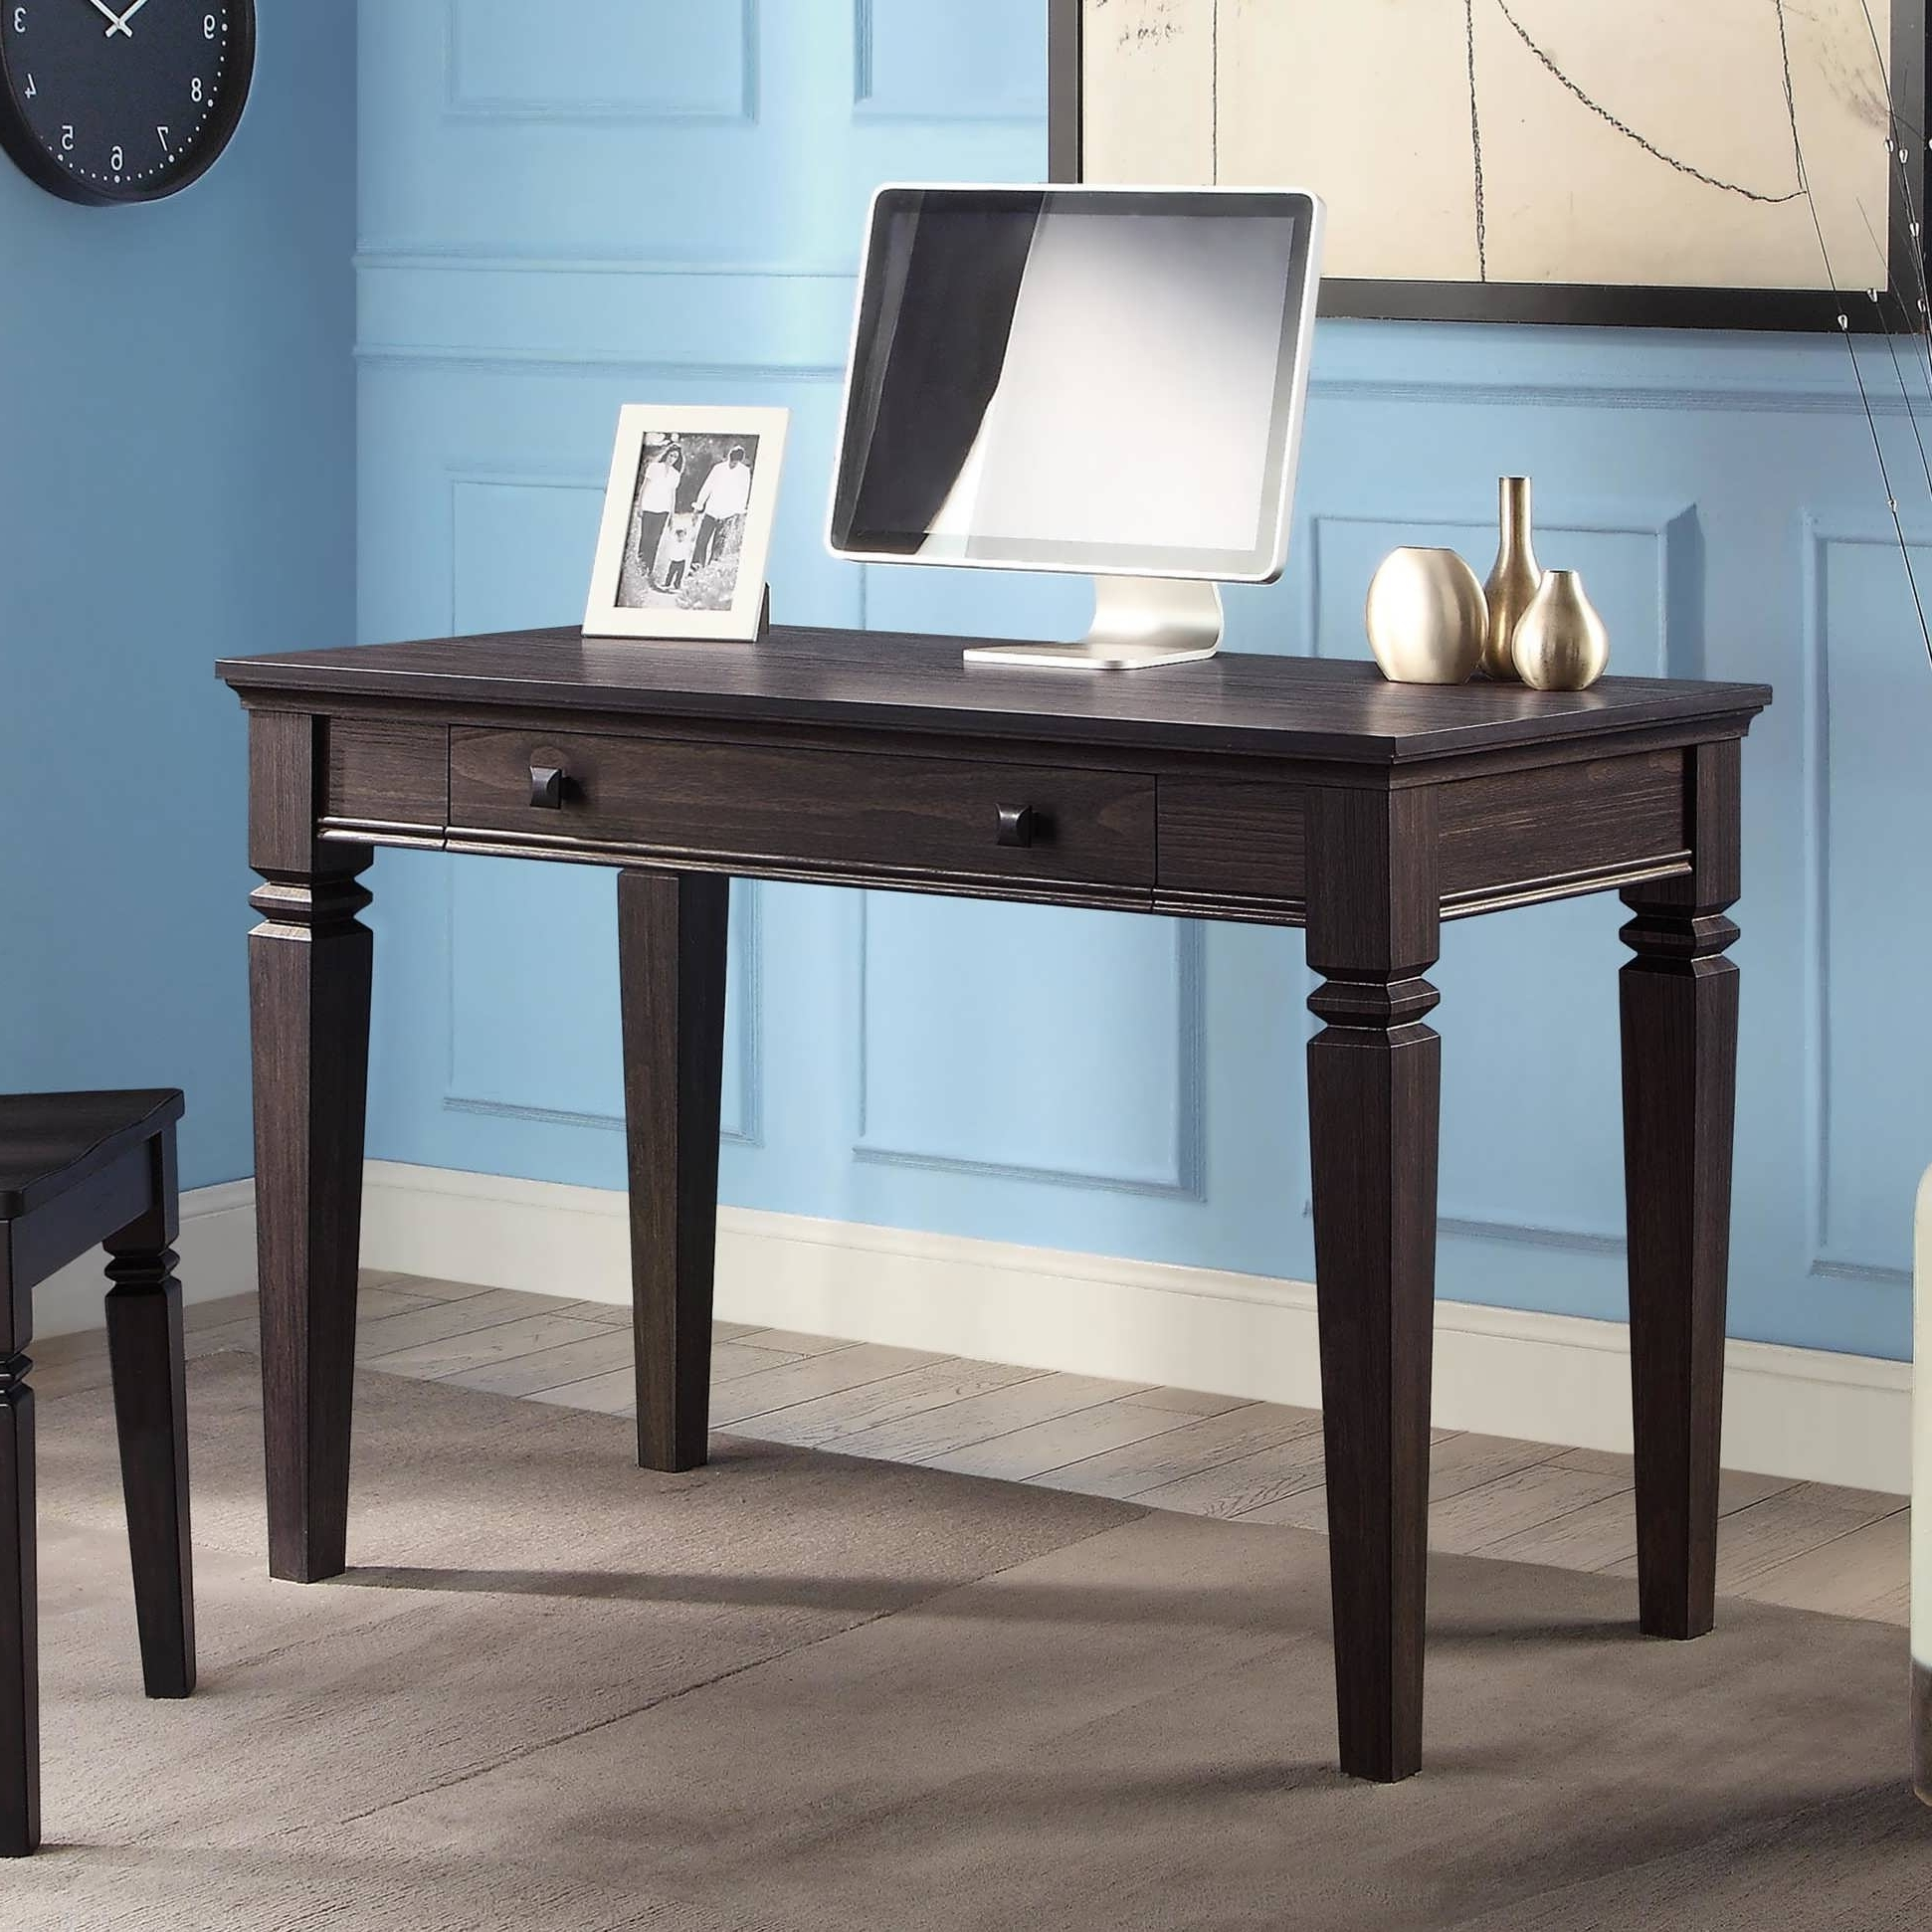 2018 Office Desk : Home Computer Desks Desks For Small Spaces Wayfair Inside Computer Desks At Wayfair (View 1 of 20)